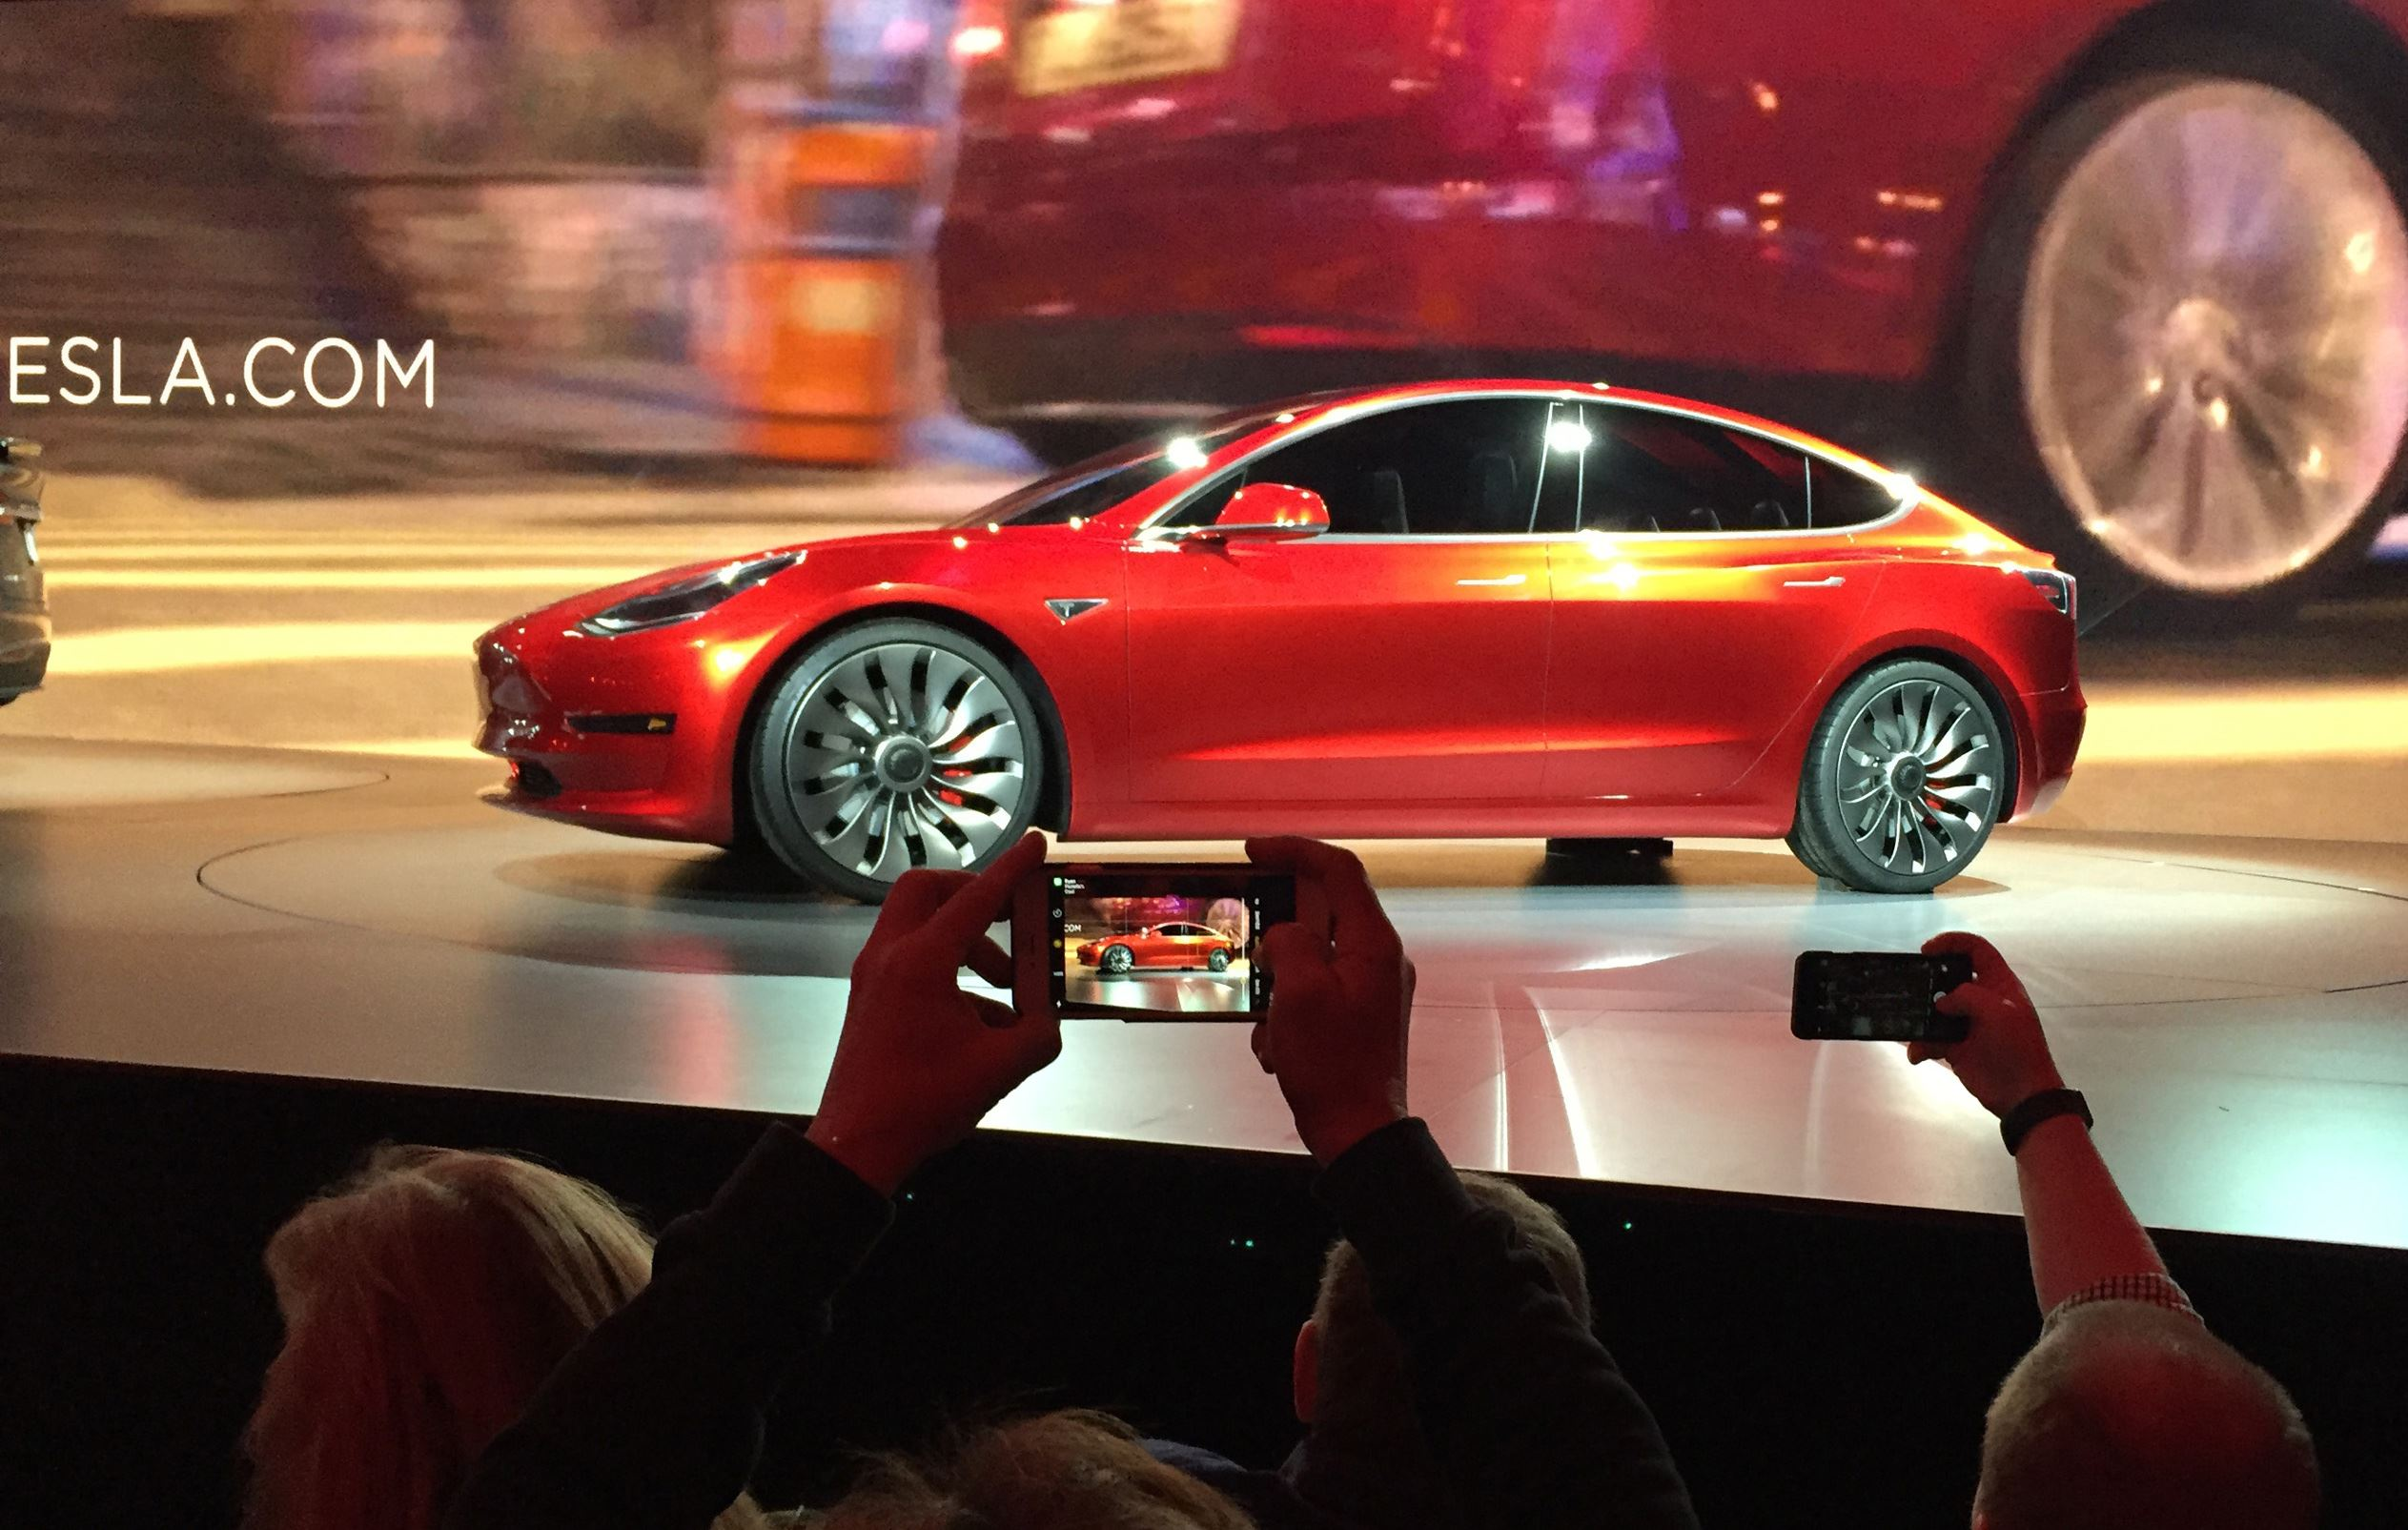 Elon Musk: Tesla Model S Autopilot is misunderstood